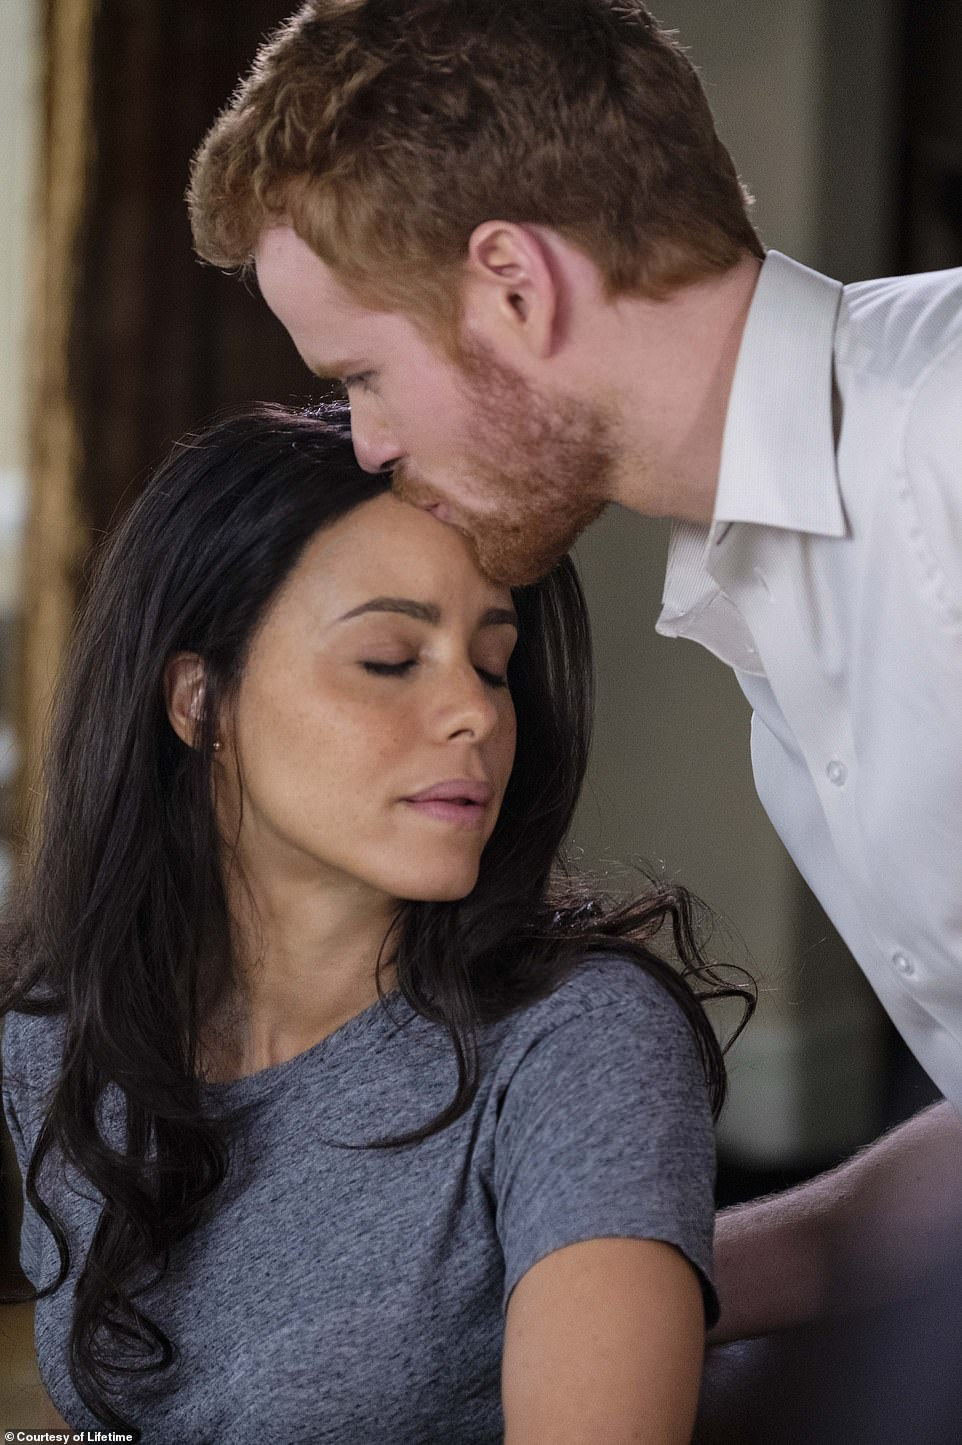 Debut: Dean and Morton are the third pair to play Harry and Meghan; Parisa Fitz-Henley and Murray Fraser debuted the roles for Lifetime in 2018's Harry & Meghan: A Royal Romance, whichcovered the early days of the couple's relationship